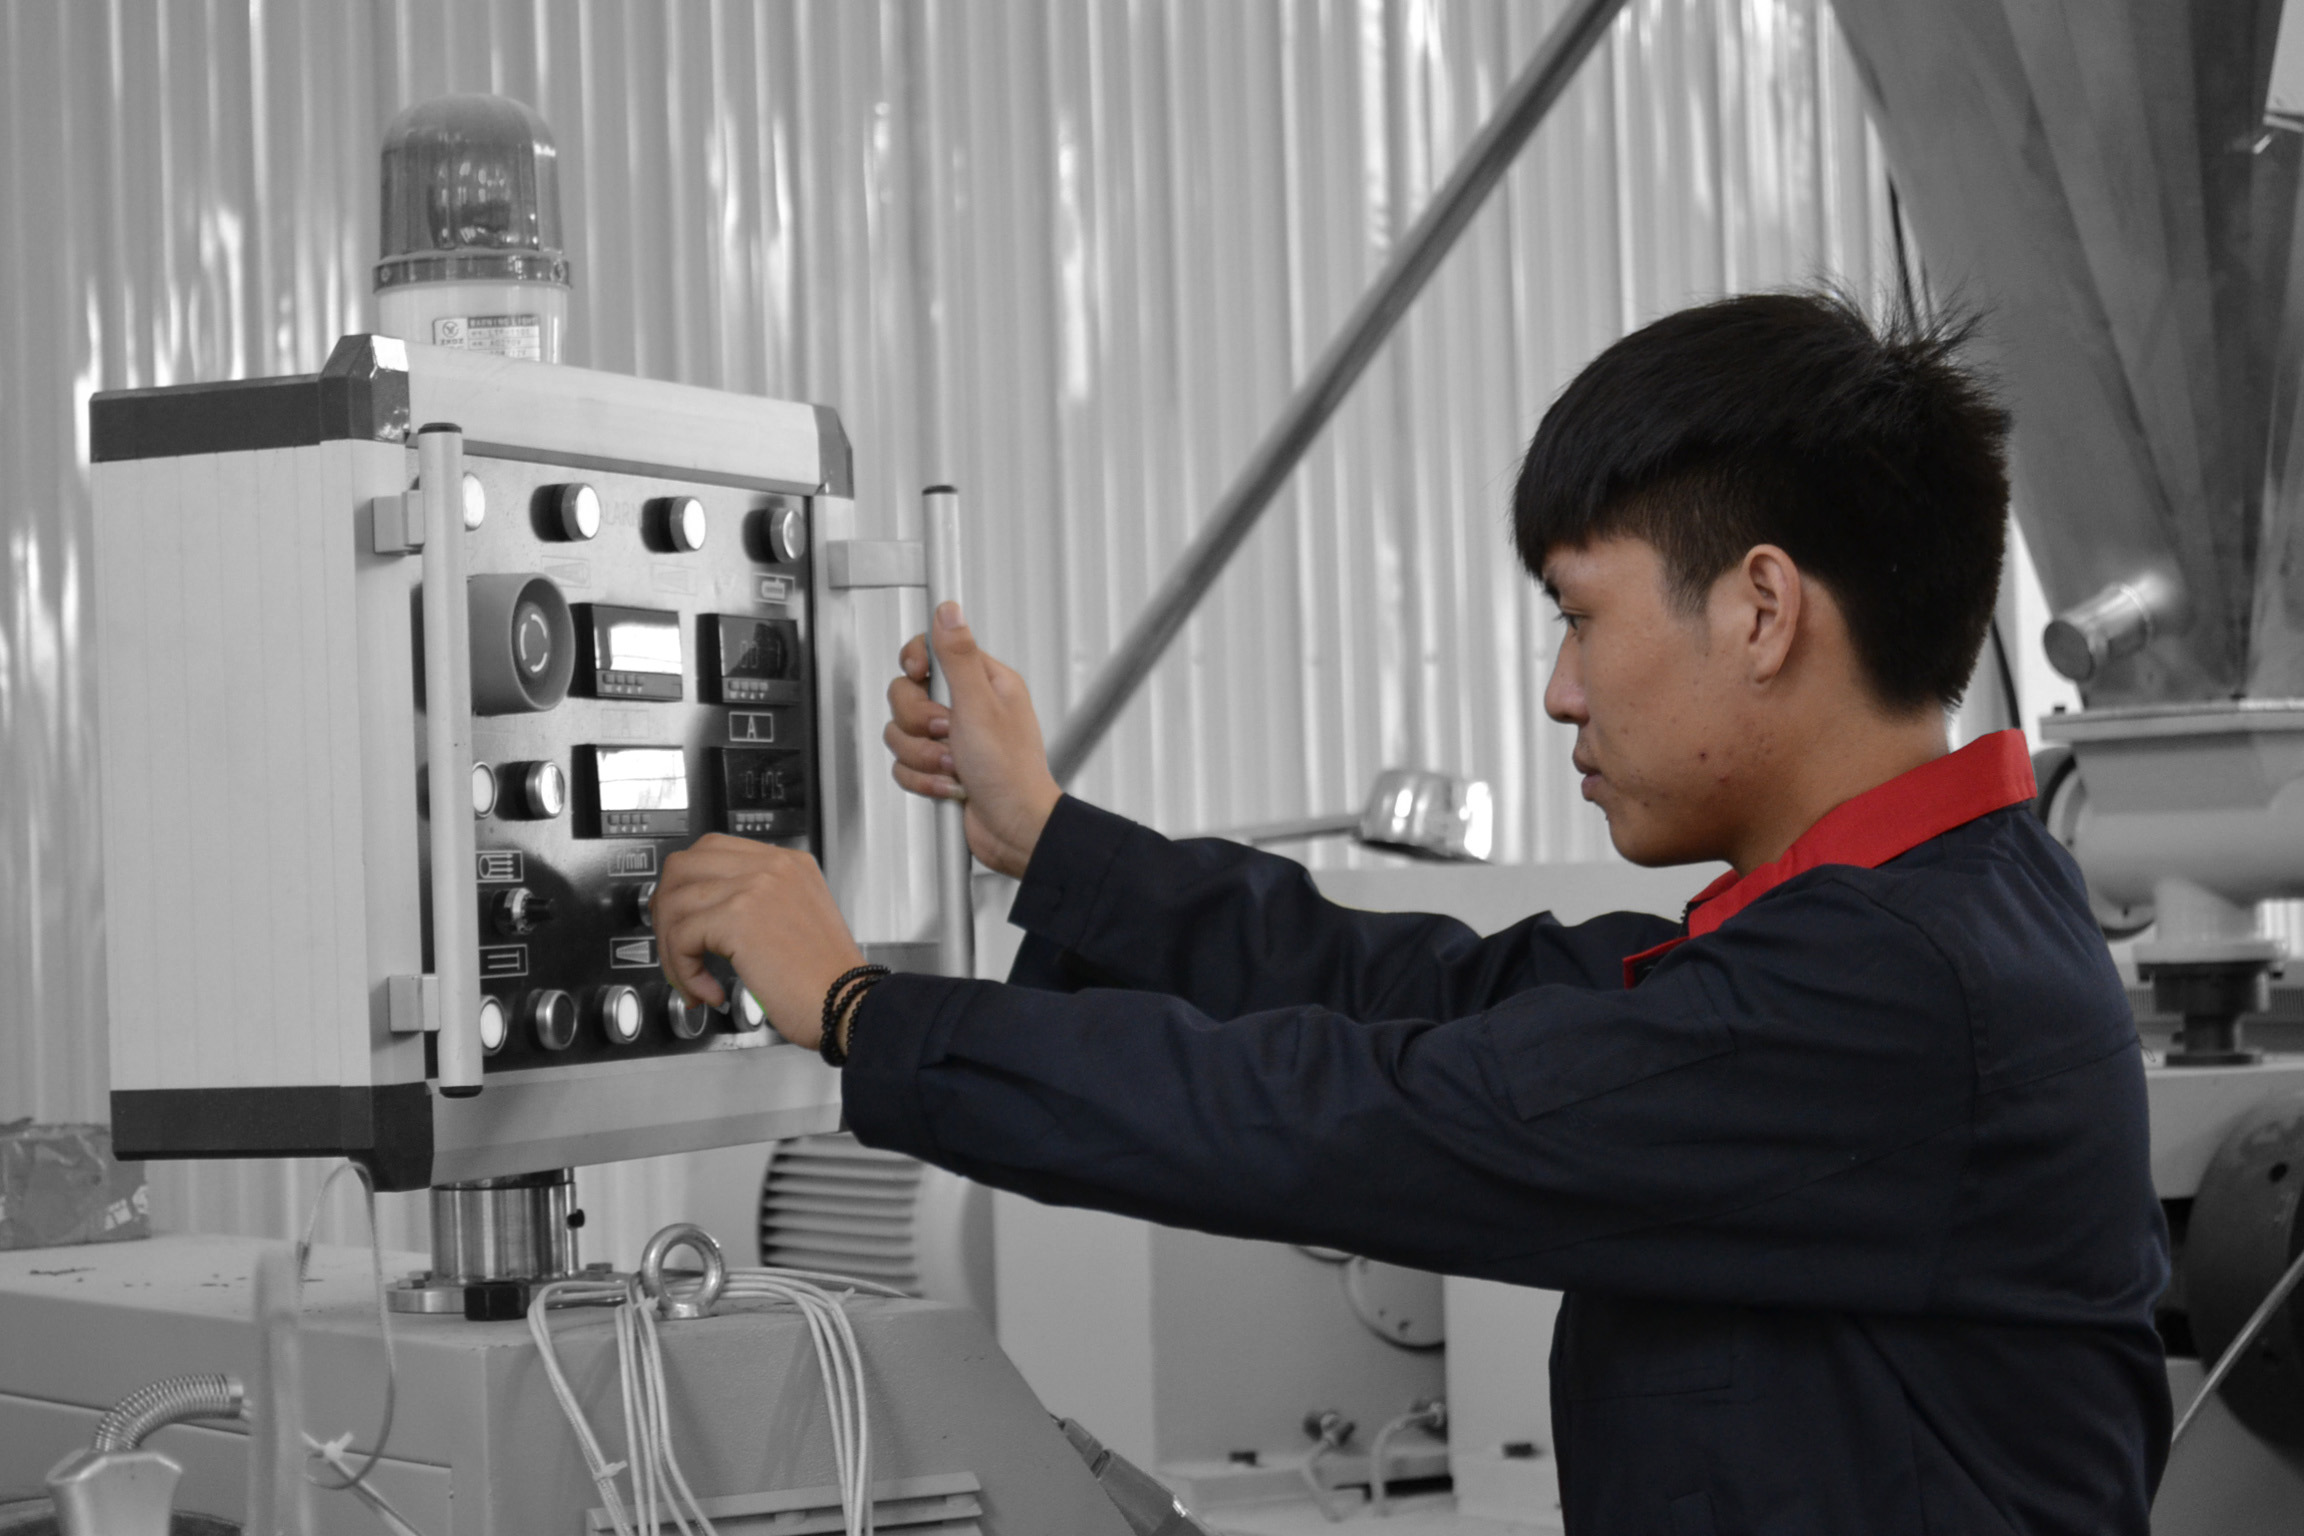 2016,SYWPC add more produce lines, to better service more customers.